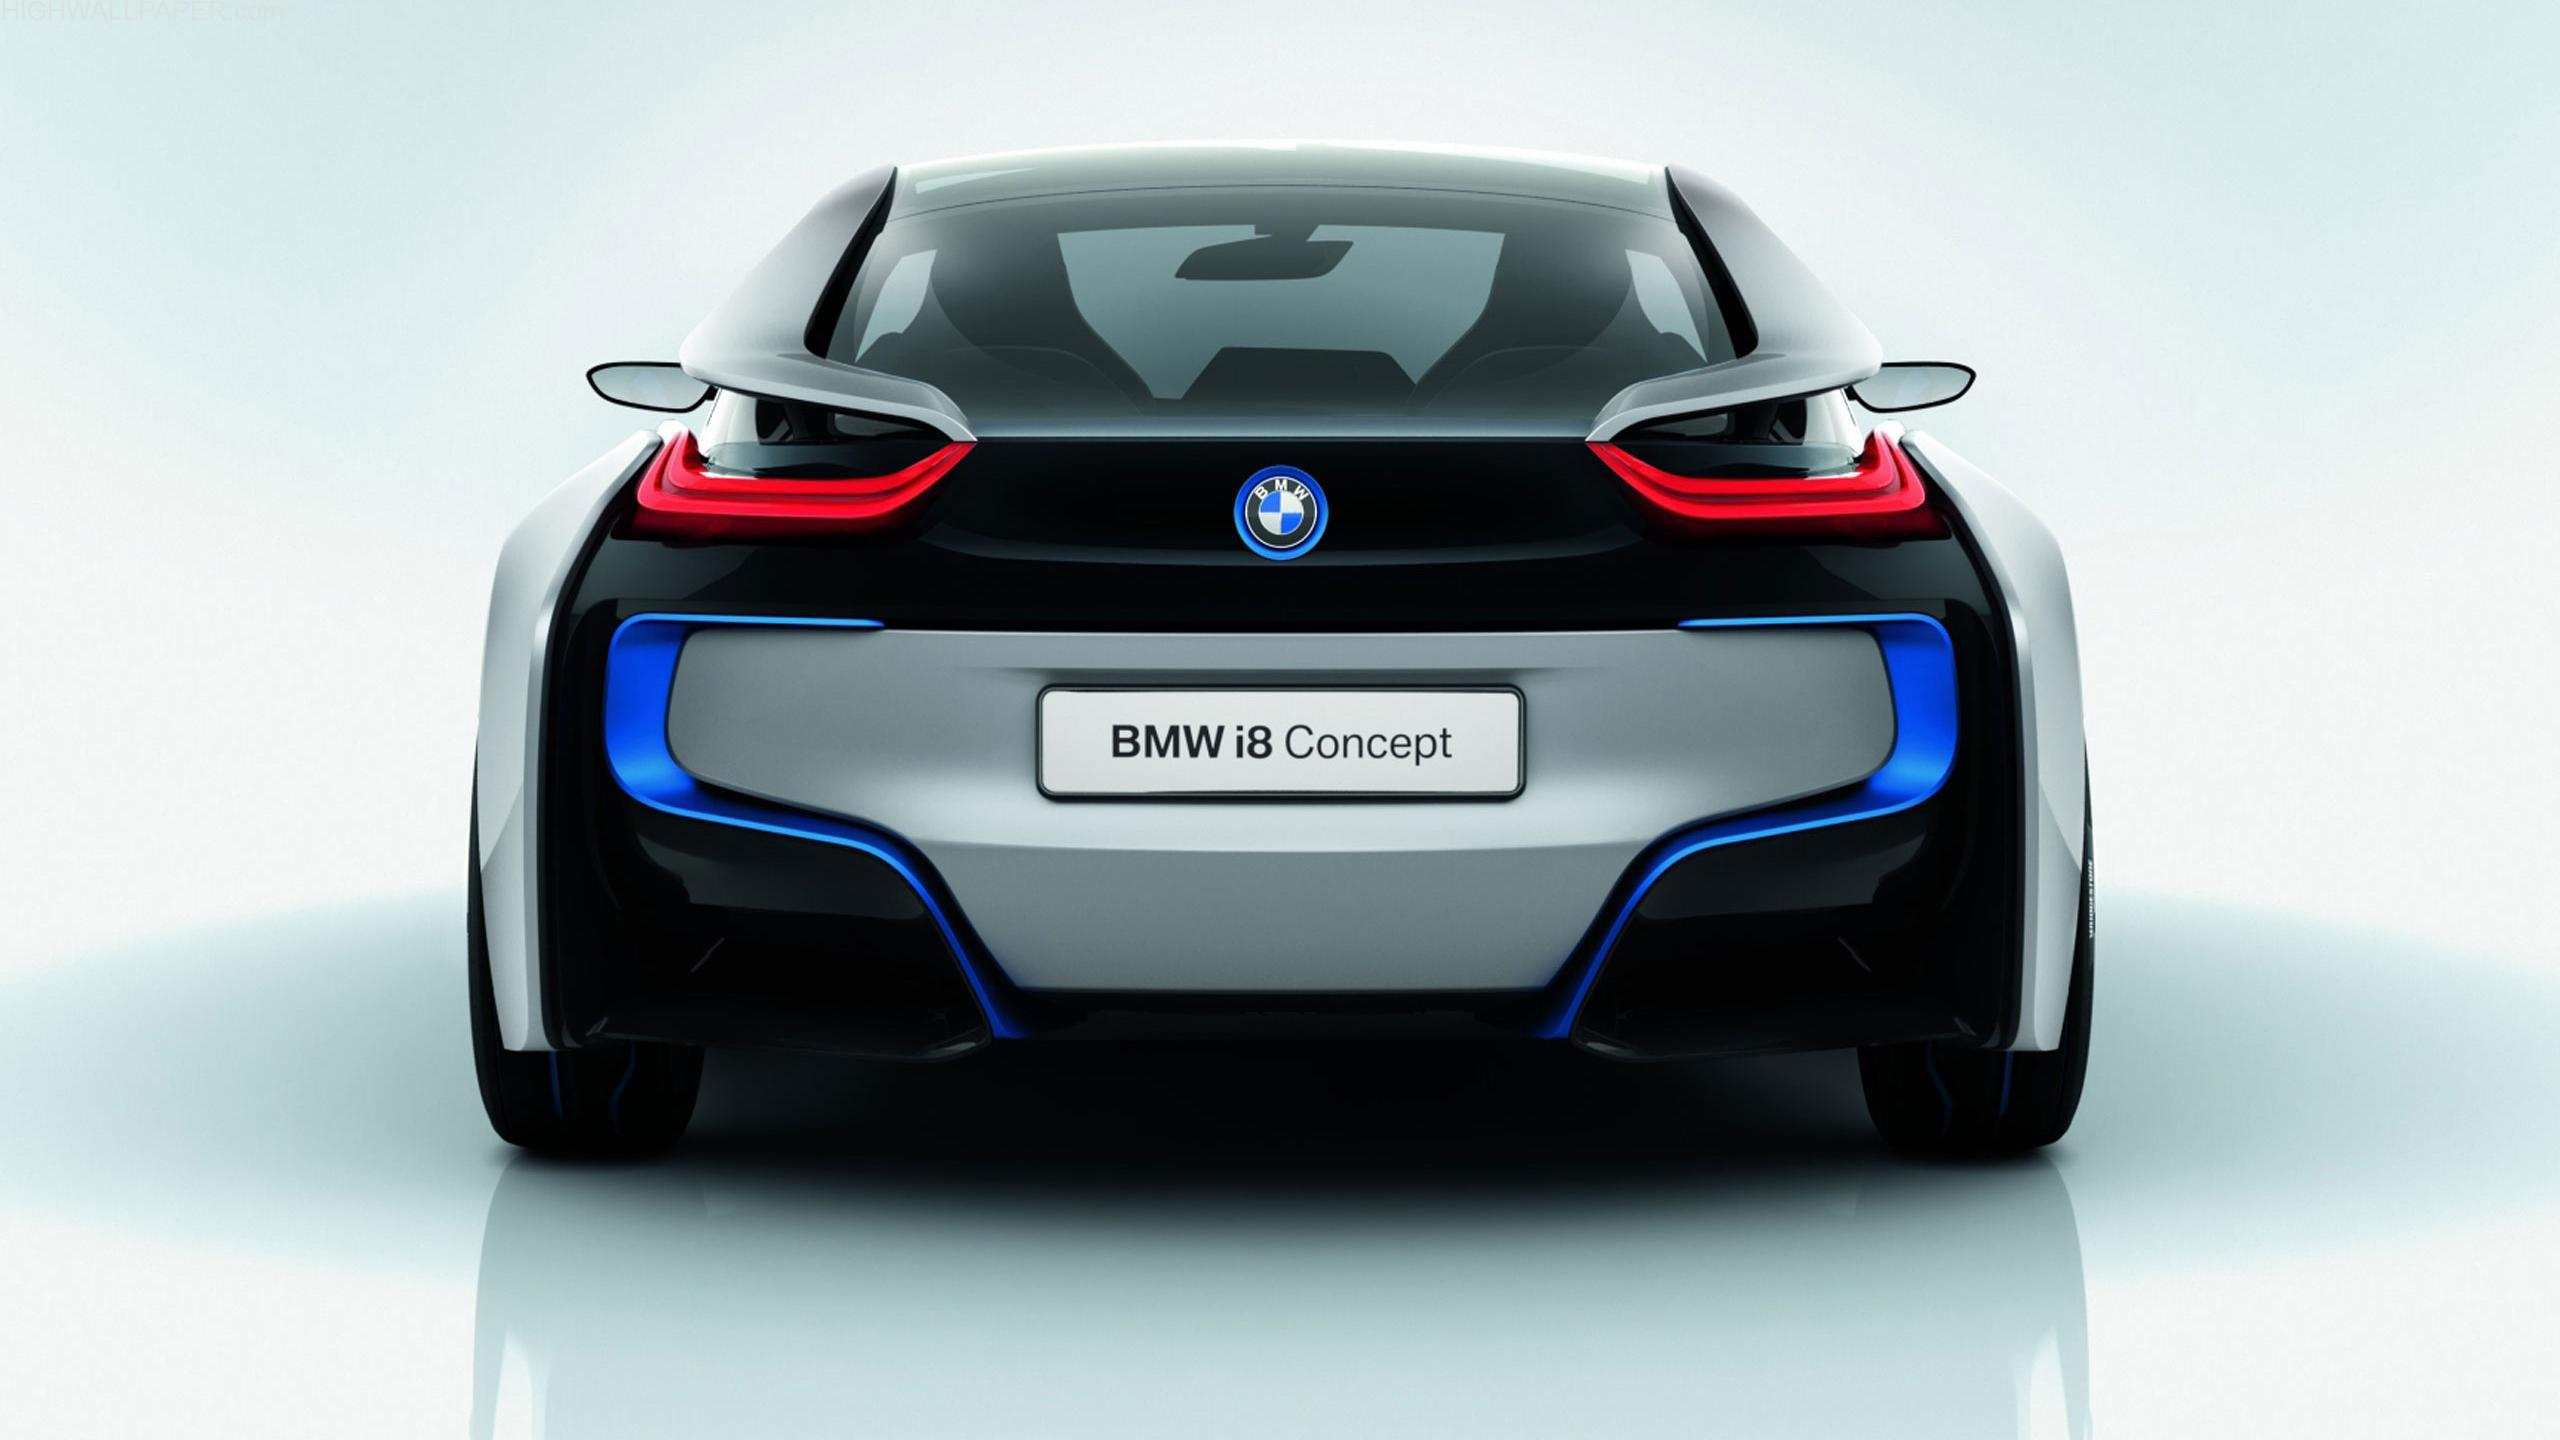 BMW i8 Concept Rear Look